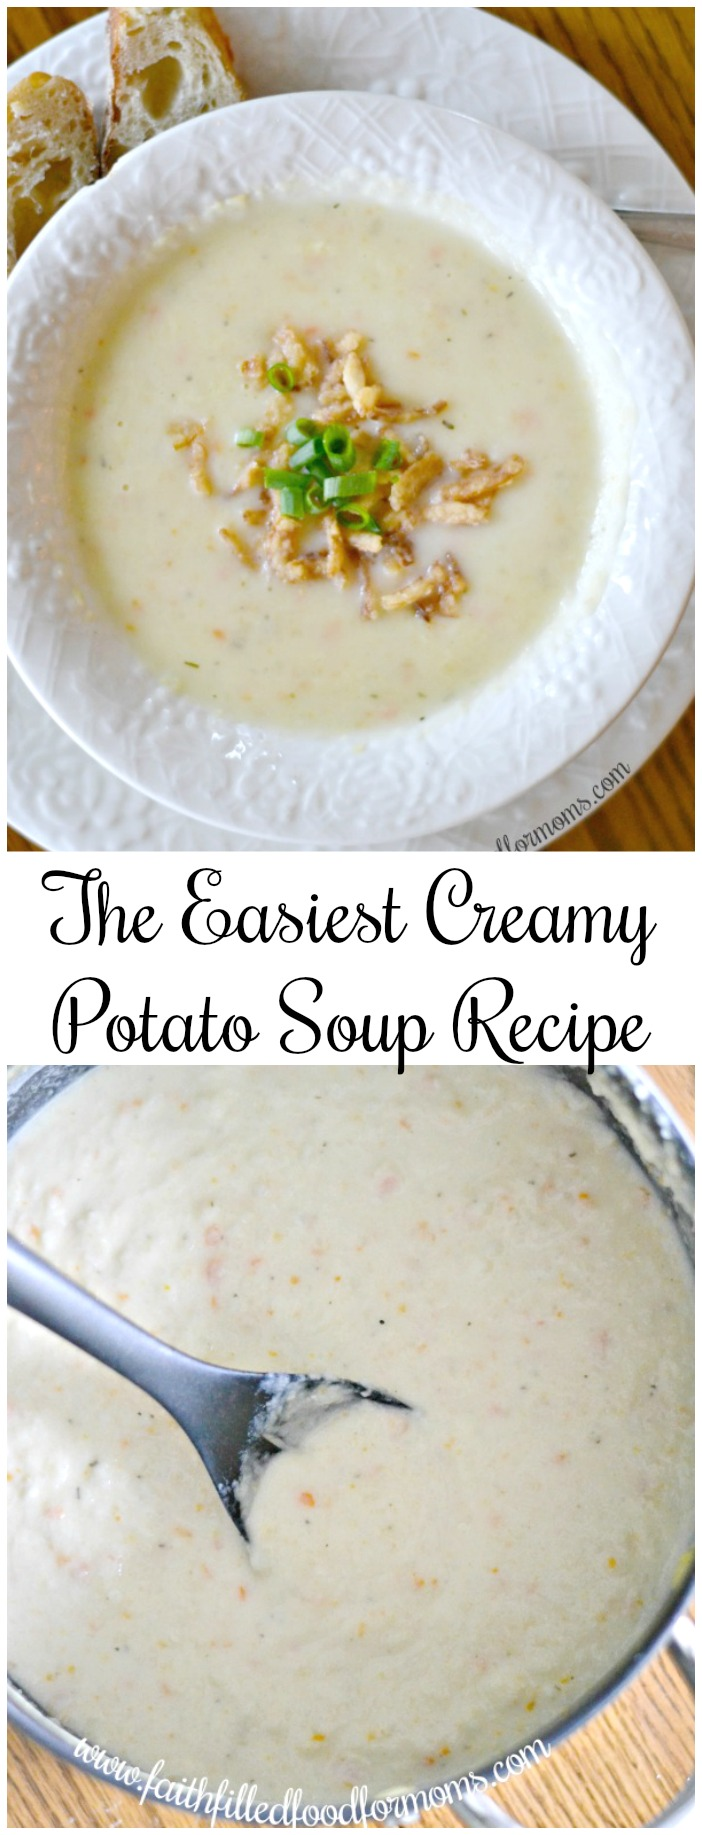 The Easiest Creamy Potato Soup Recipe ever!